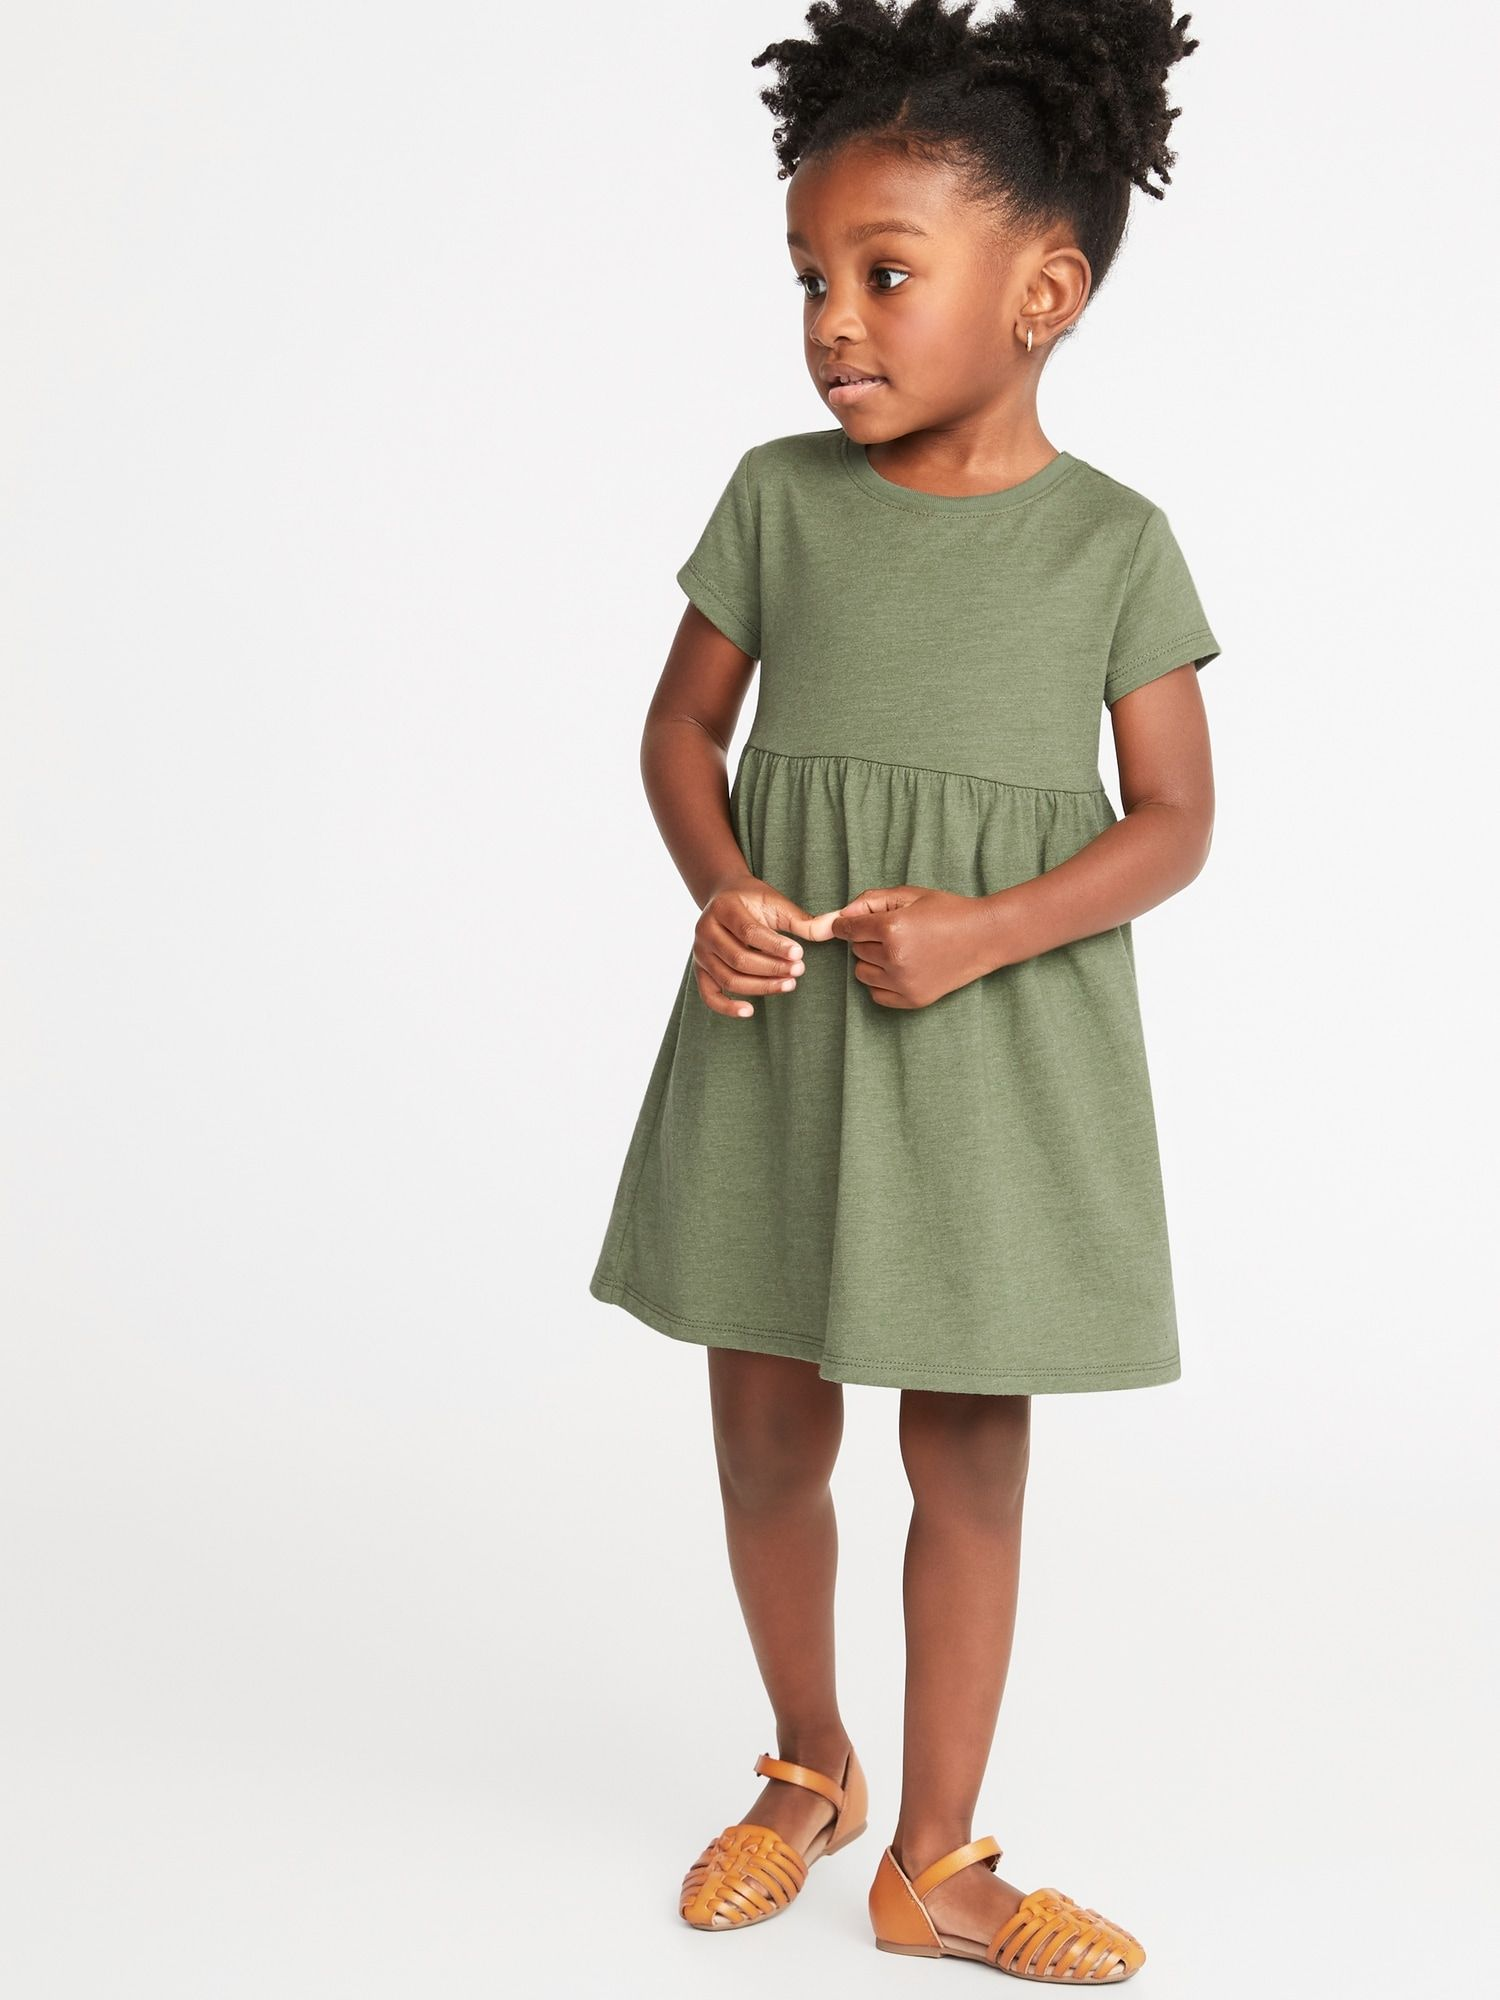 4b7b07fa94255 Jersey Fit & Flare Dress for Toddler Girls | Bluebonnet Inspiration ...